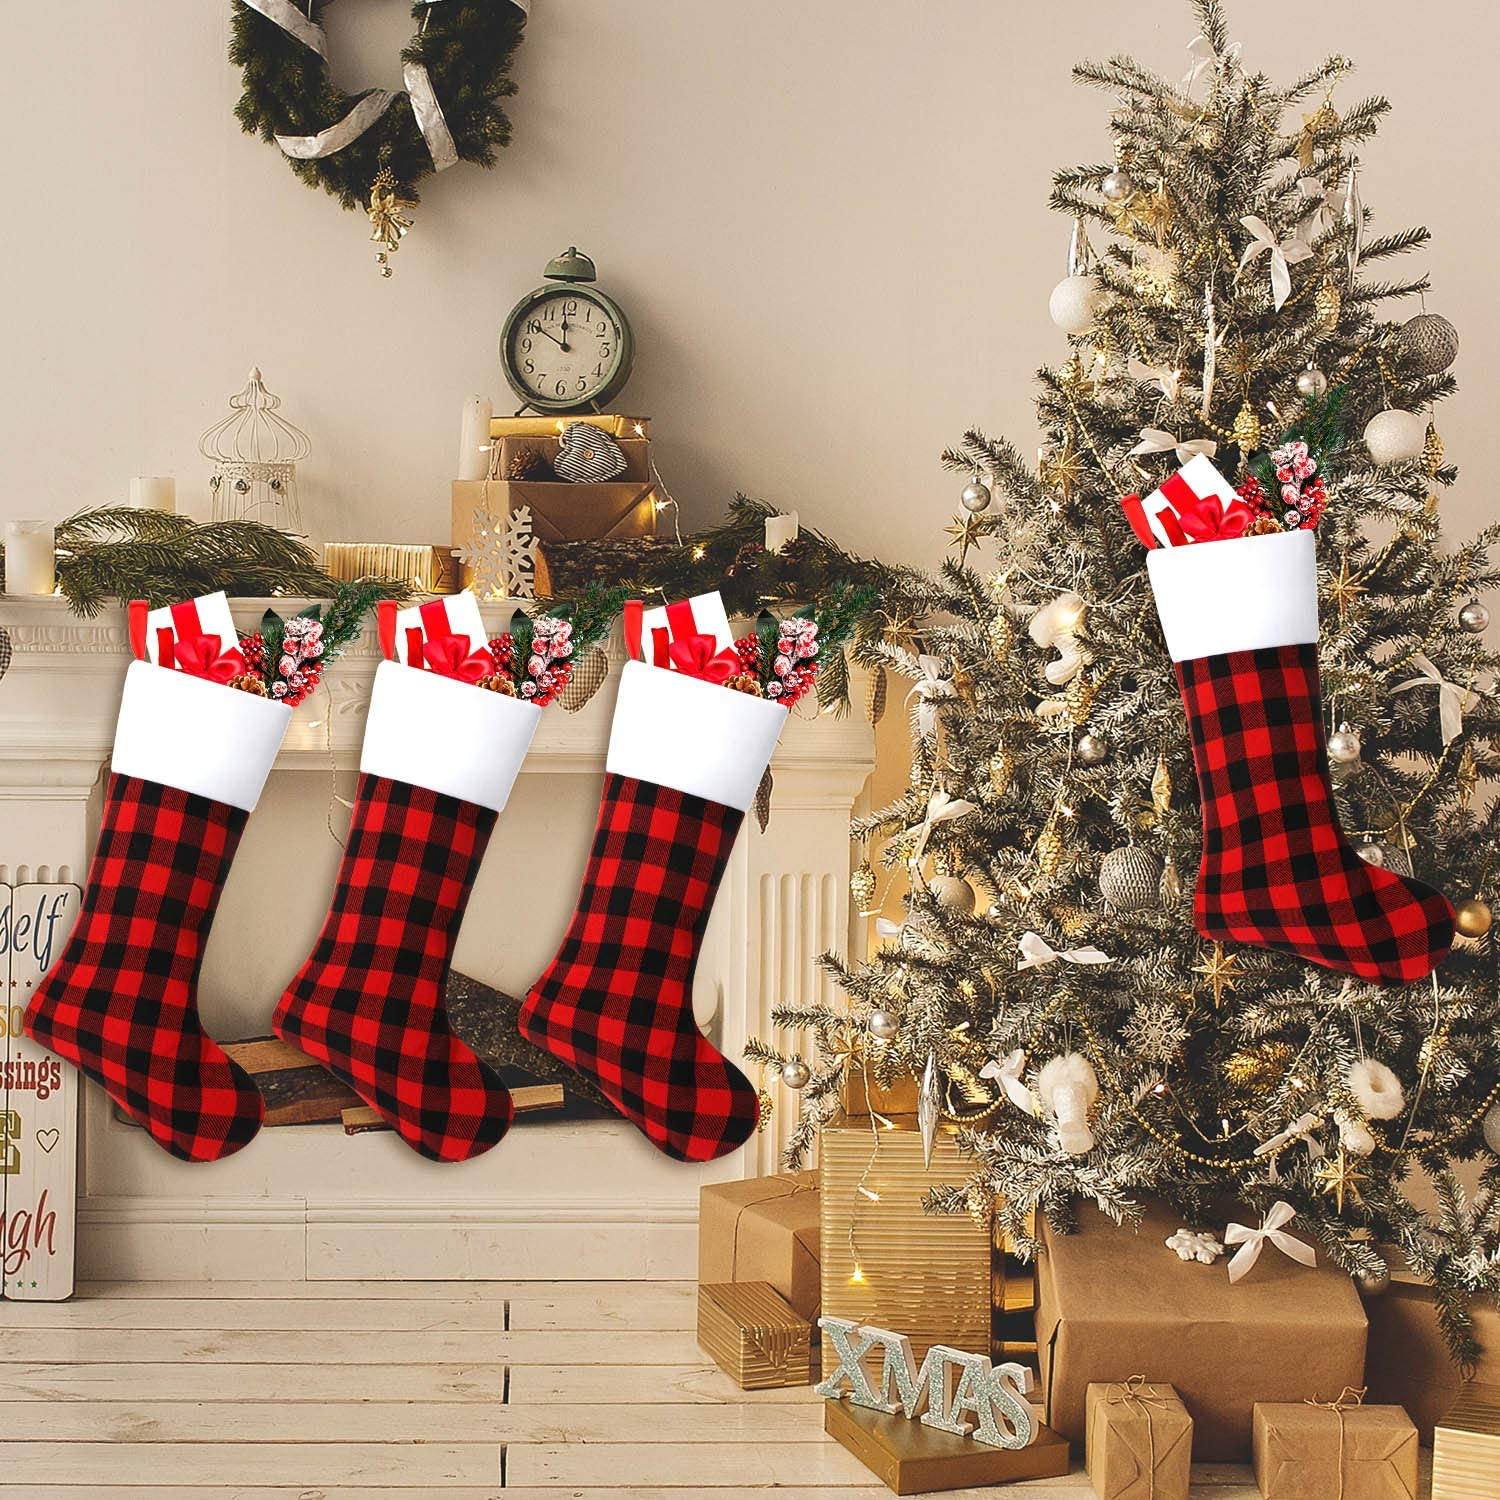 Skylety 6 Pieces 20 Inch Christmas Stockings Red and Black Plaid Stocking Faux Fur Cuff Stocking Fireplace Hanging Stockings for Family Holiday Xmas Party Decorations